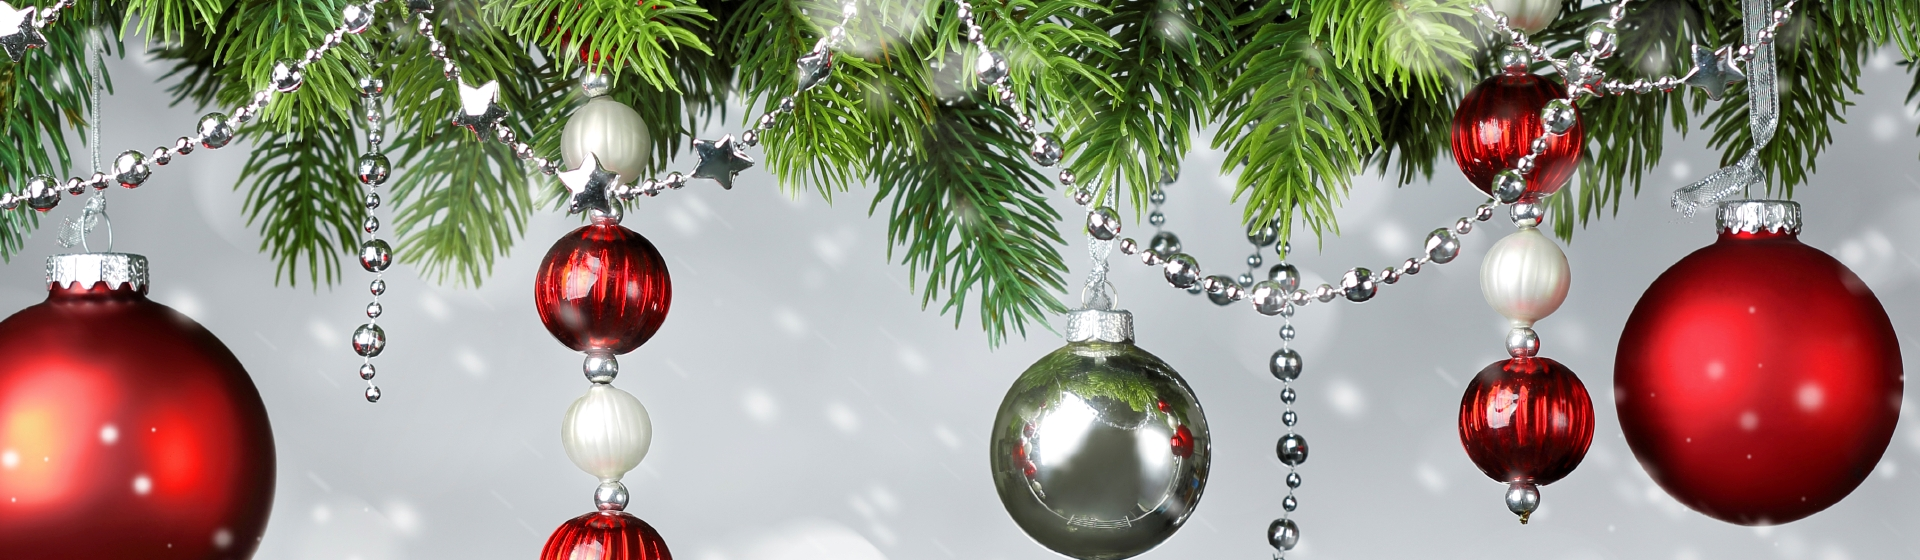 Christmas ornaments hanging from a tree.